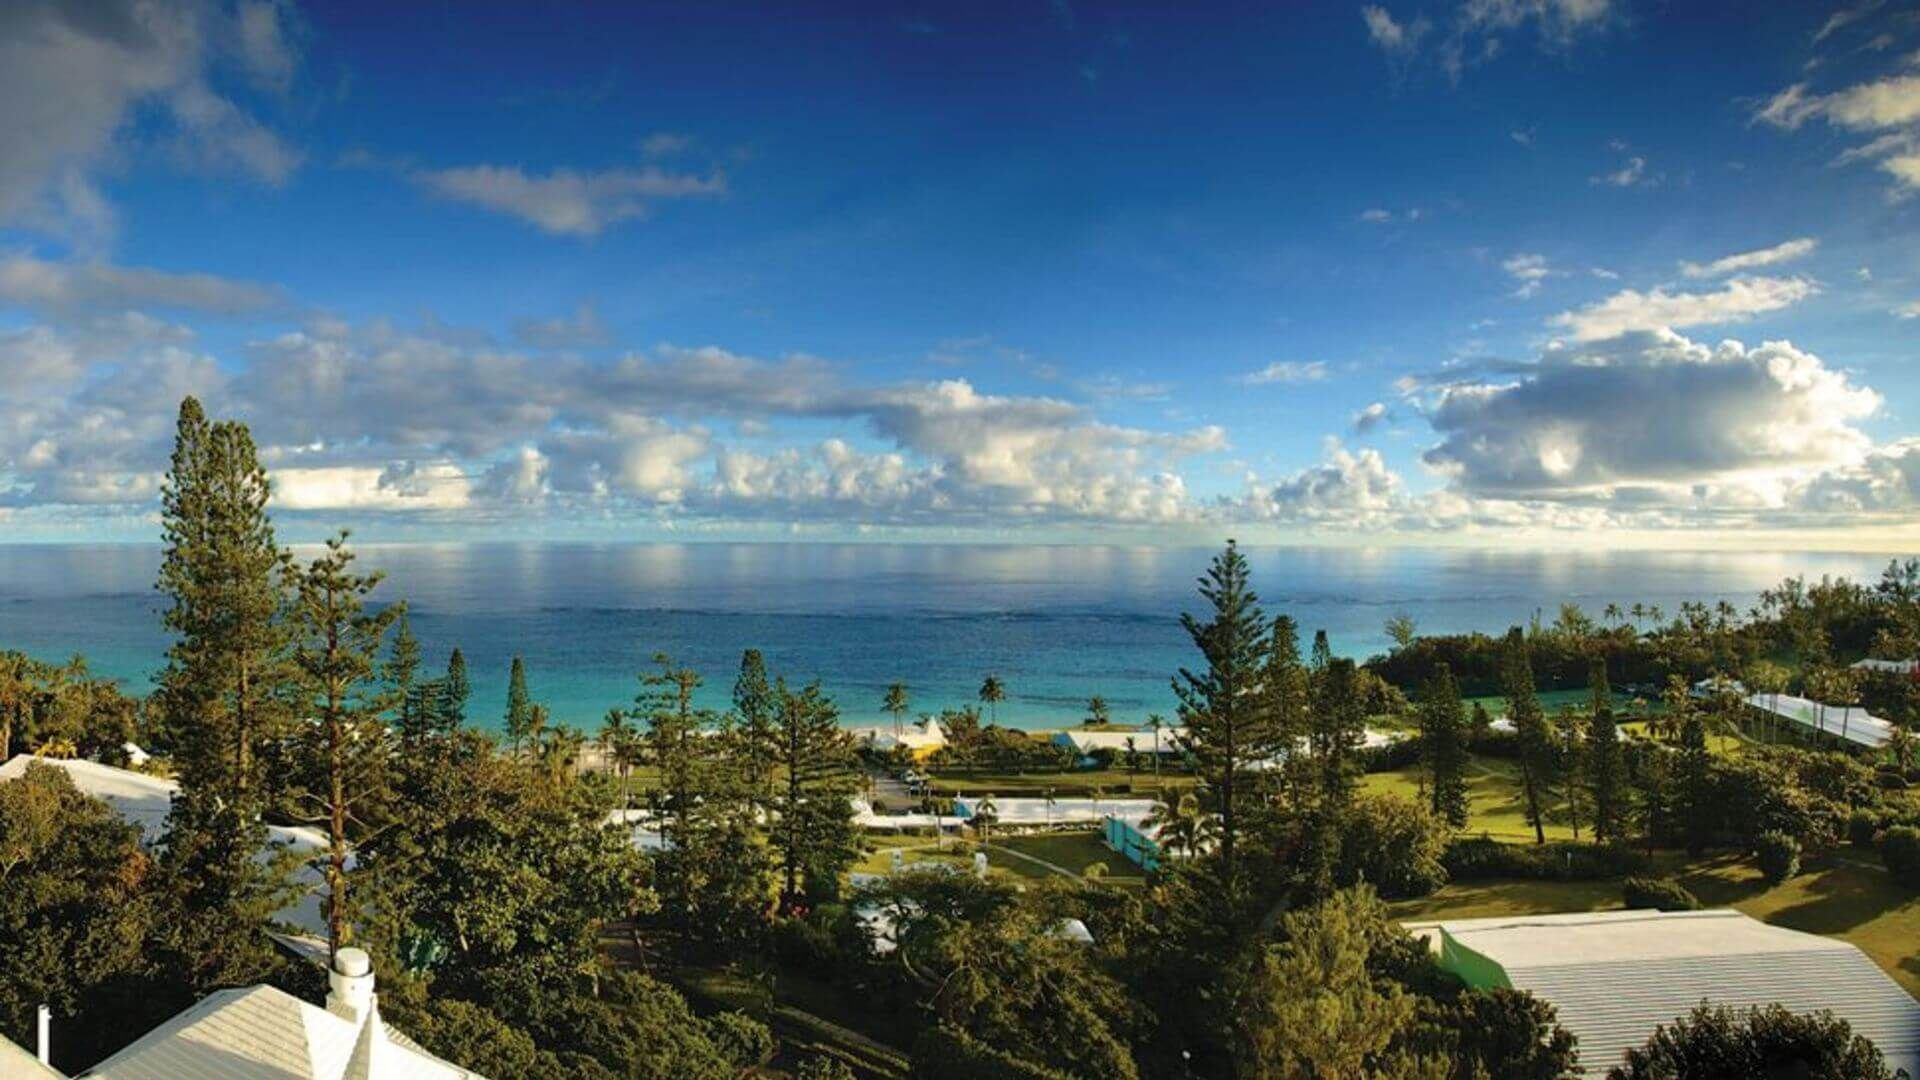 #Elbow Beach Resort Bermuda #PagetParish #Caribbean #Bermuda #Hotels #travel #travelblogger #travelgram #travelguide #travels #travelling #travelblog #traveladdict #traveladikkt #beautifuldestinations #bucketlist #luxury #luxurylifestyle #luxurytravel #luxurydestinations #lifestyle #lifestyleblogger #beautifulplaces #beautifulplace #beautiful #beautifuldestination